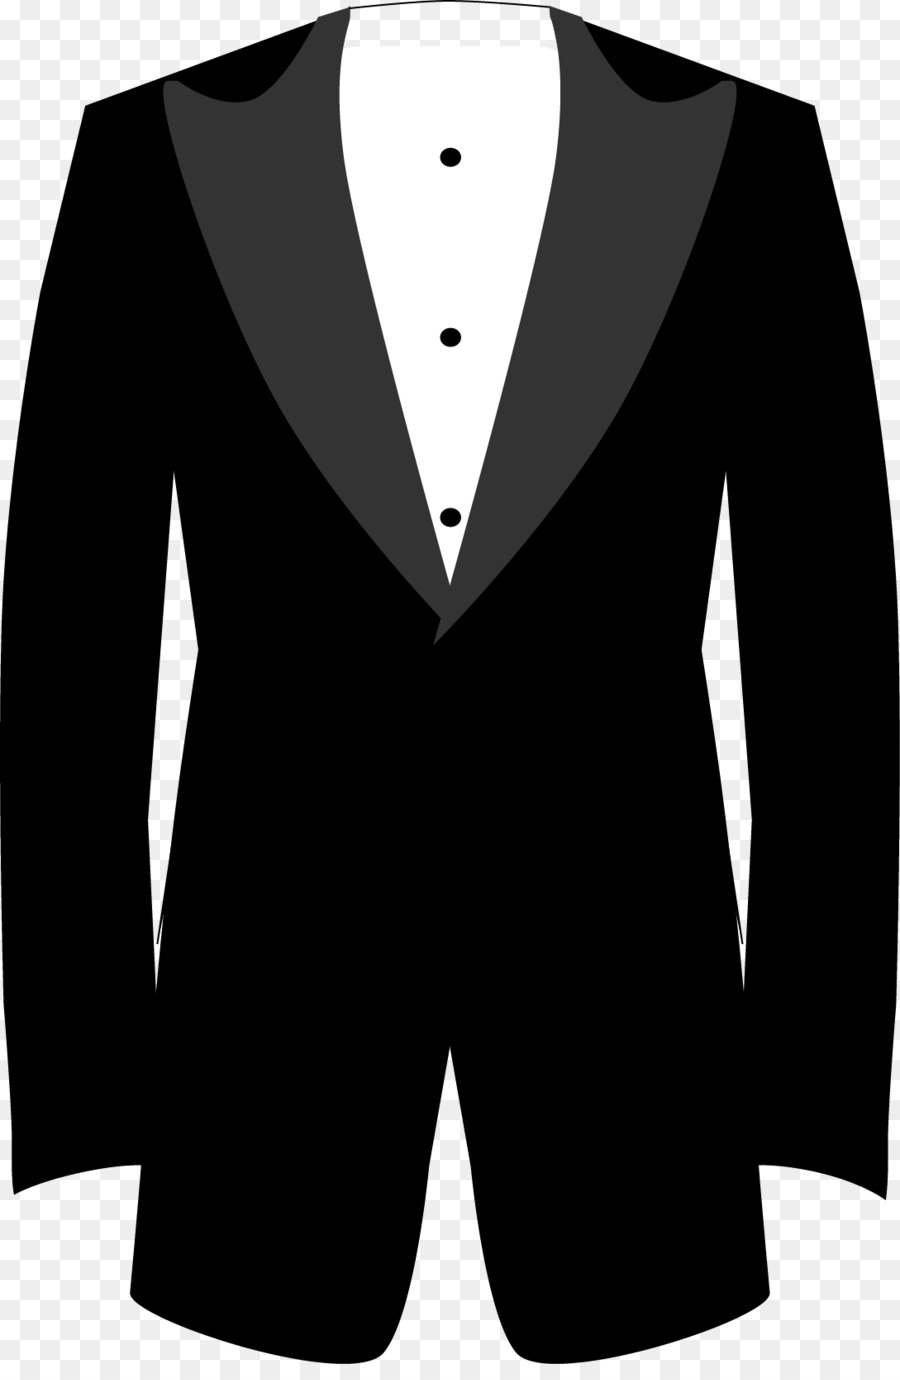 Shirt and bowtie clipart free stock Bow Tie png download - 1089*1650 - Free Transparent Tshirt ... free stock